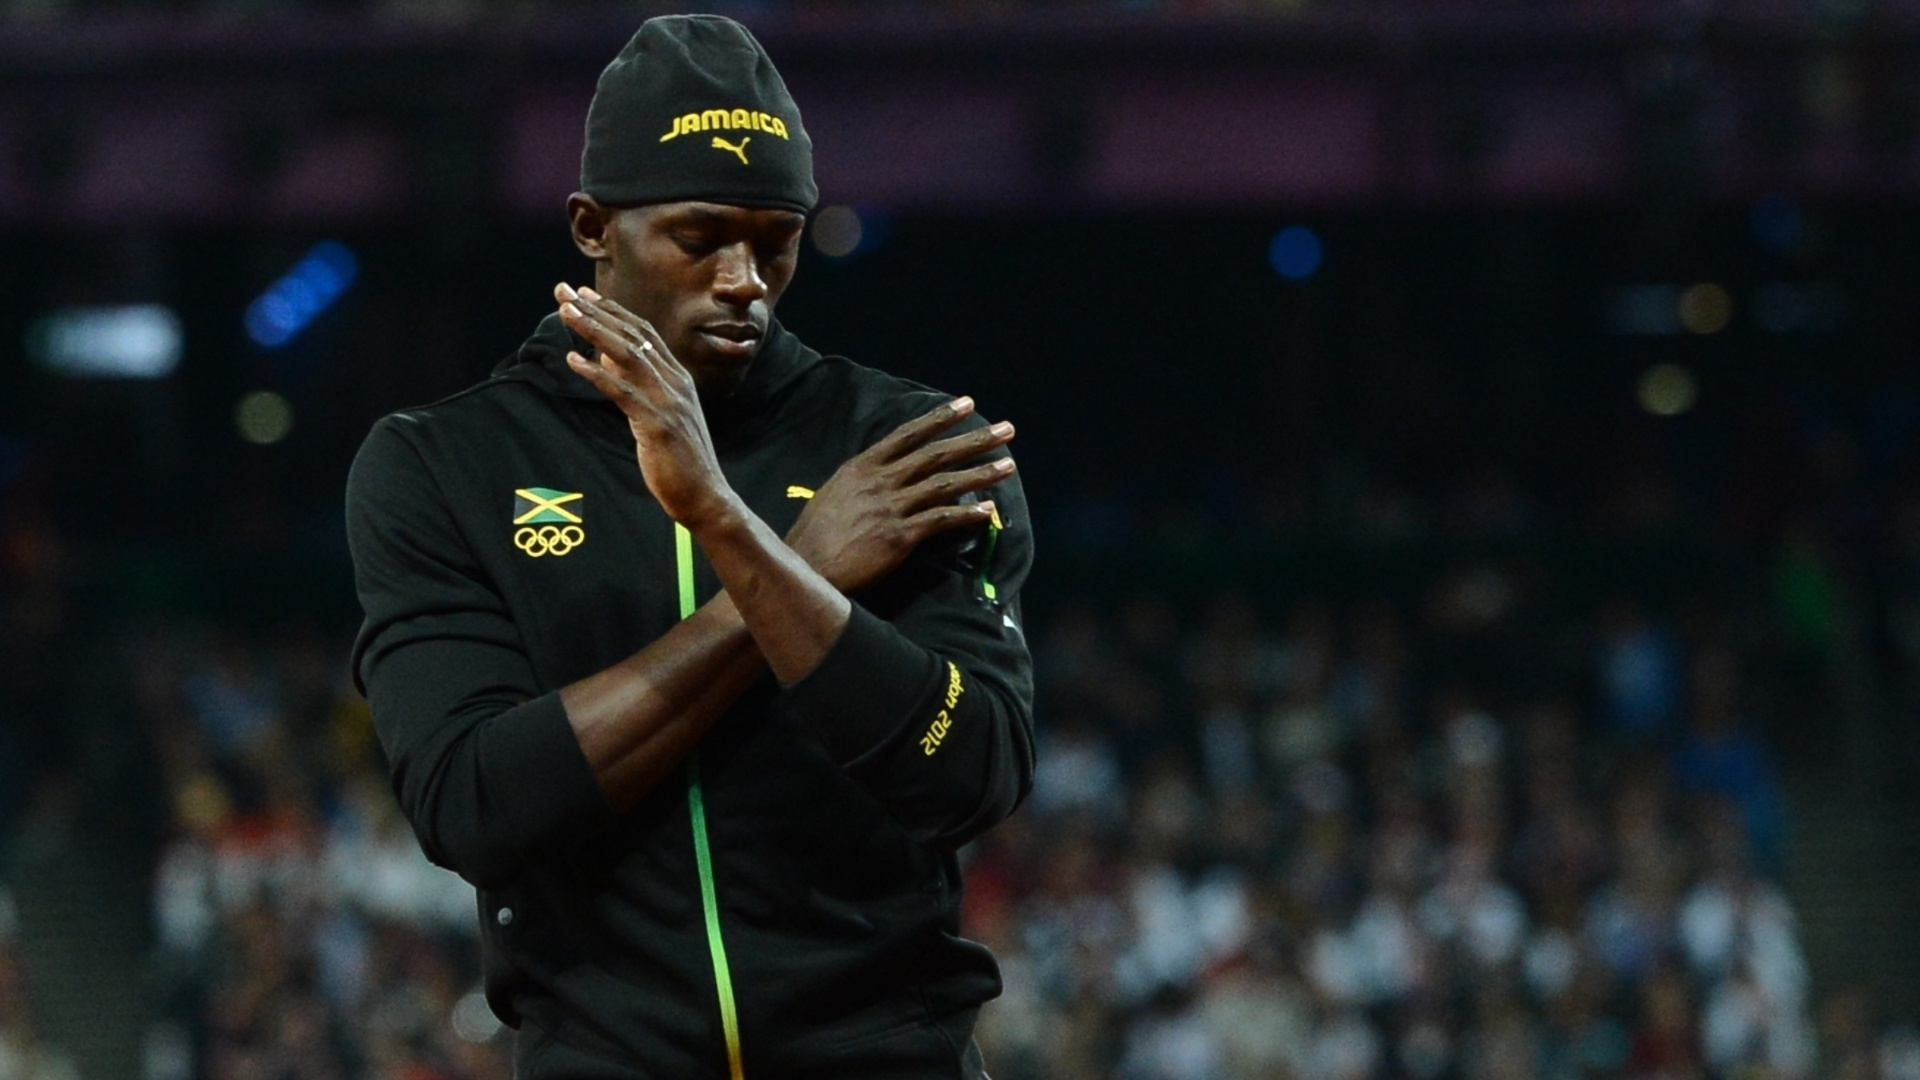 Usain Bolt dana antes da final olmpica dos 100 m rasos